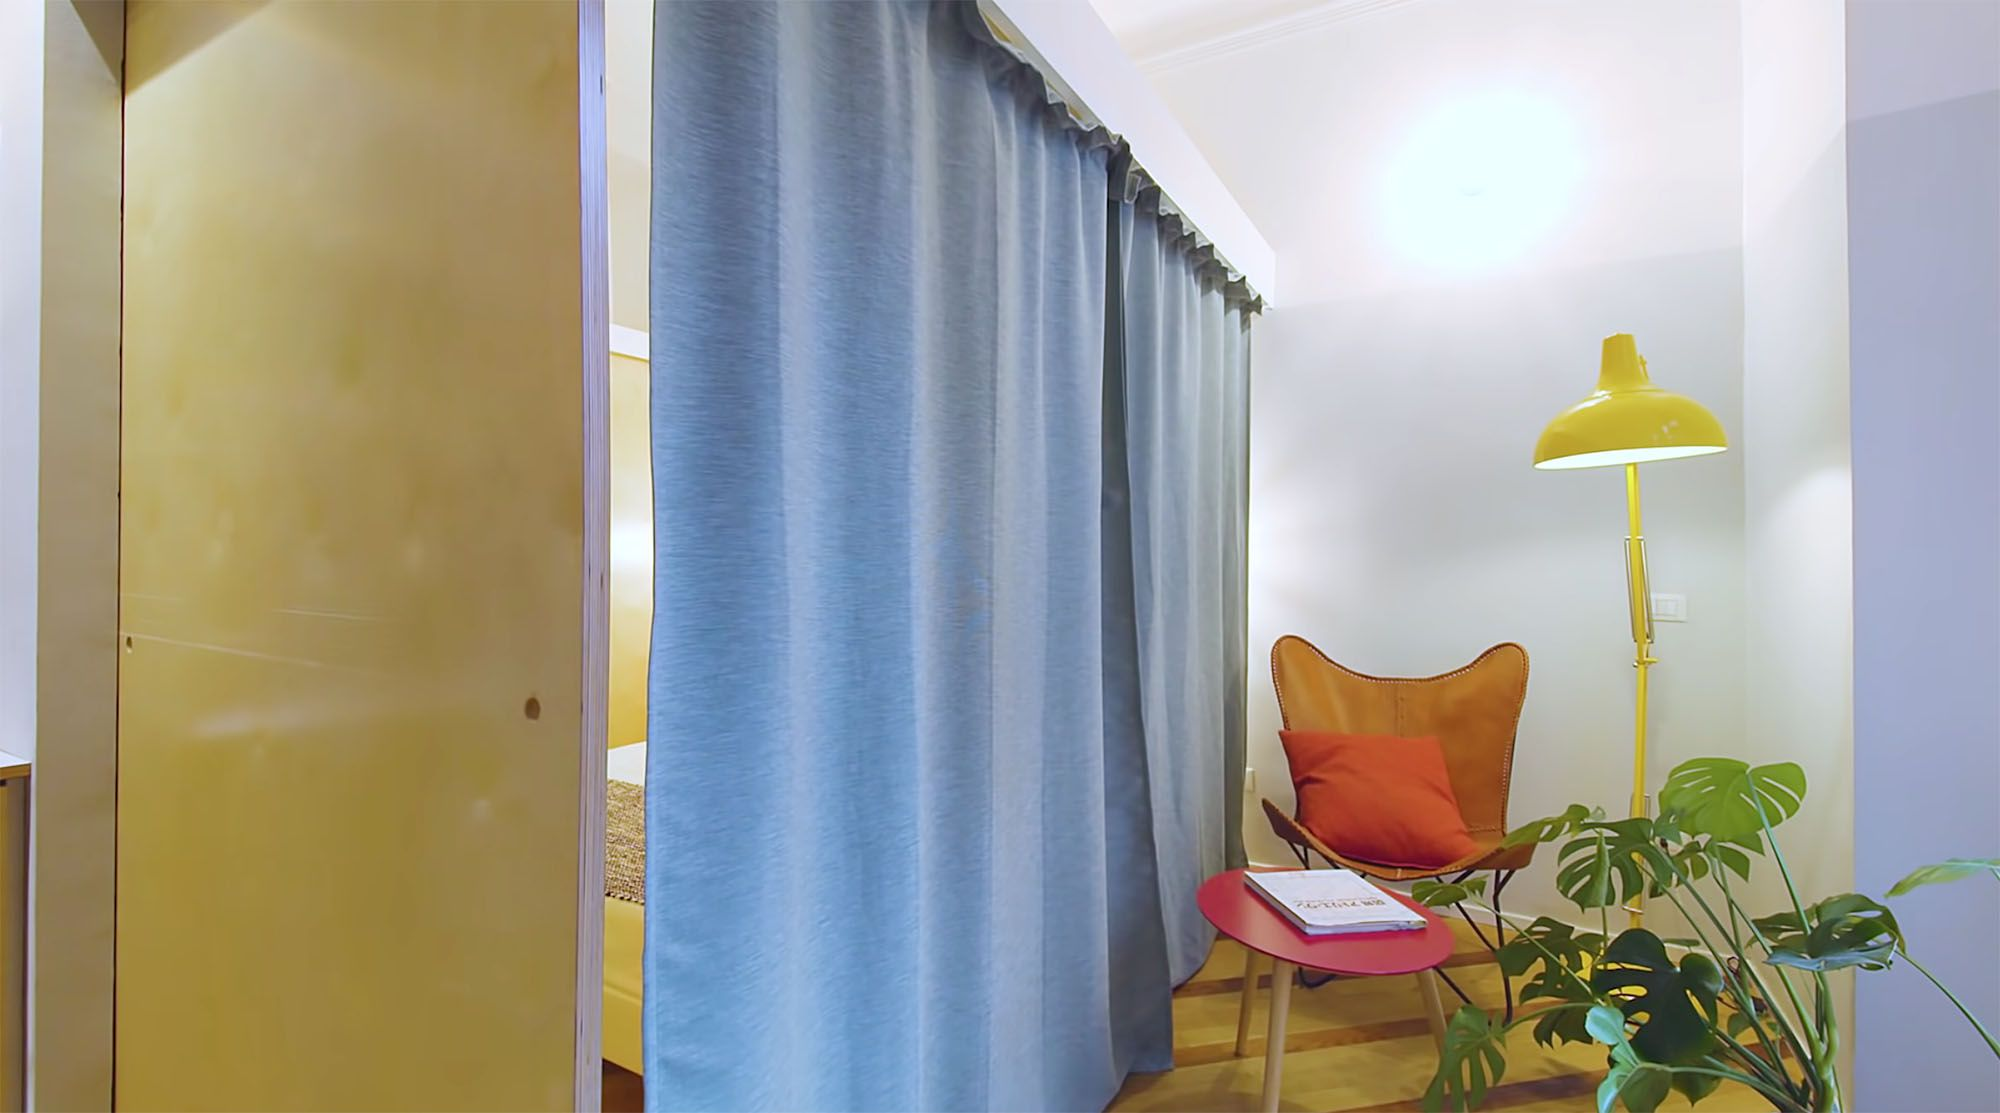 House In Constant Transition small apartment renovation ATOMAA reading nook